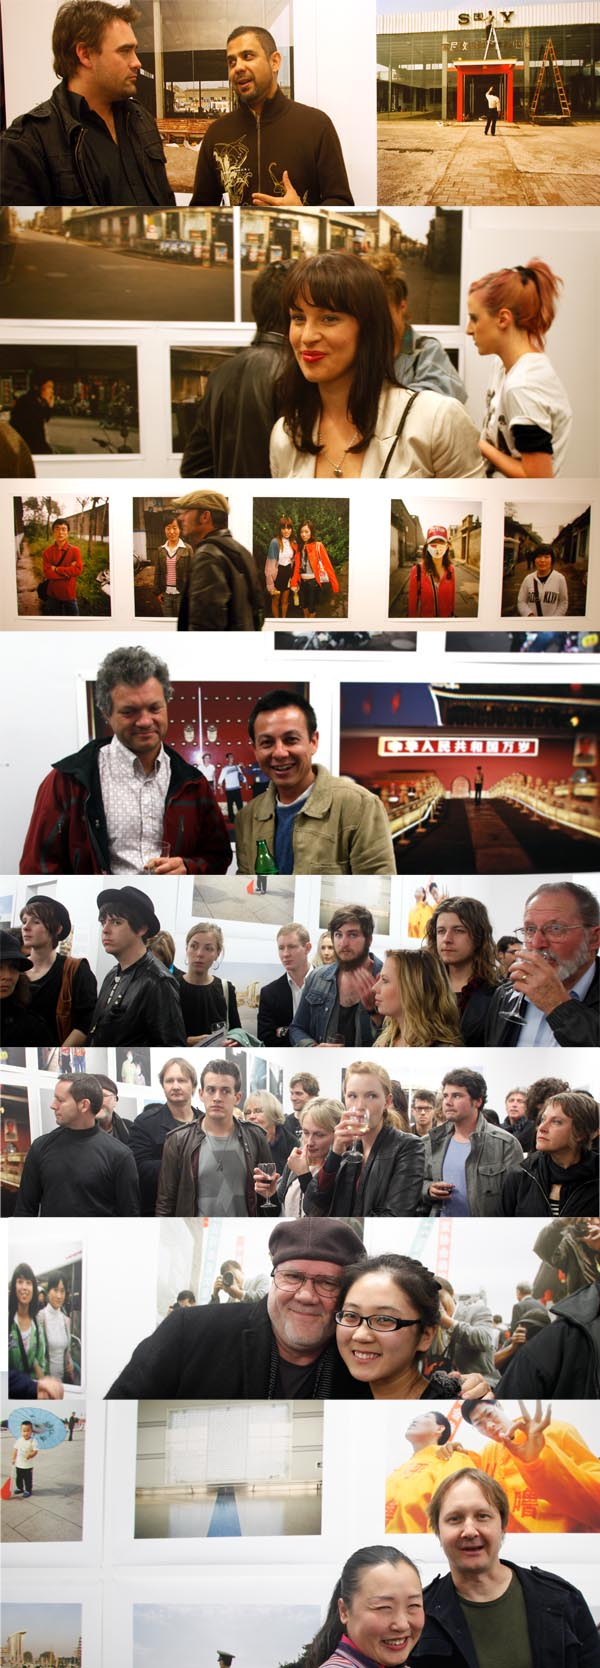 Graham Miller, Kevin Ballantine, Juha Tolonen, Mike Gray and friends at PCP launch of 8 Days, photos taken during the Pingyao International Photography Festival